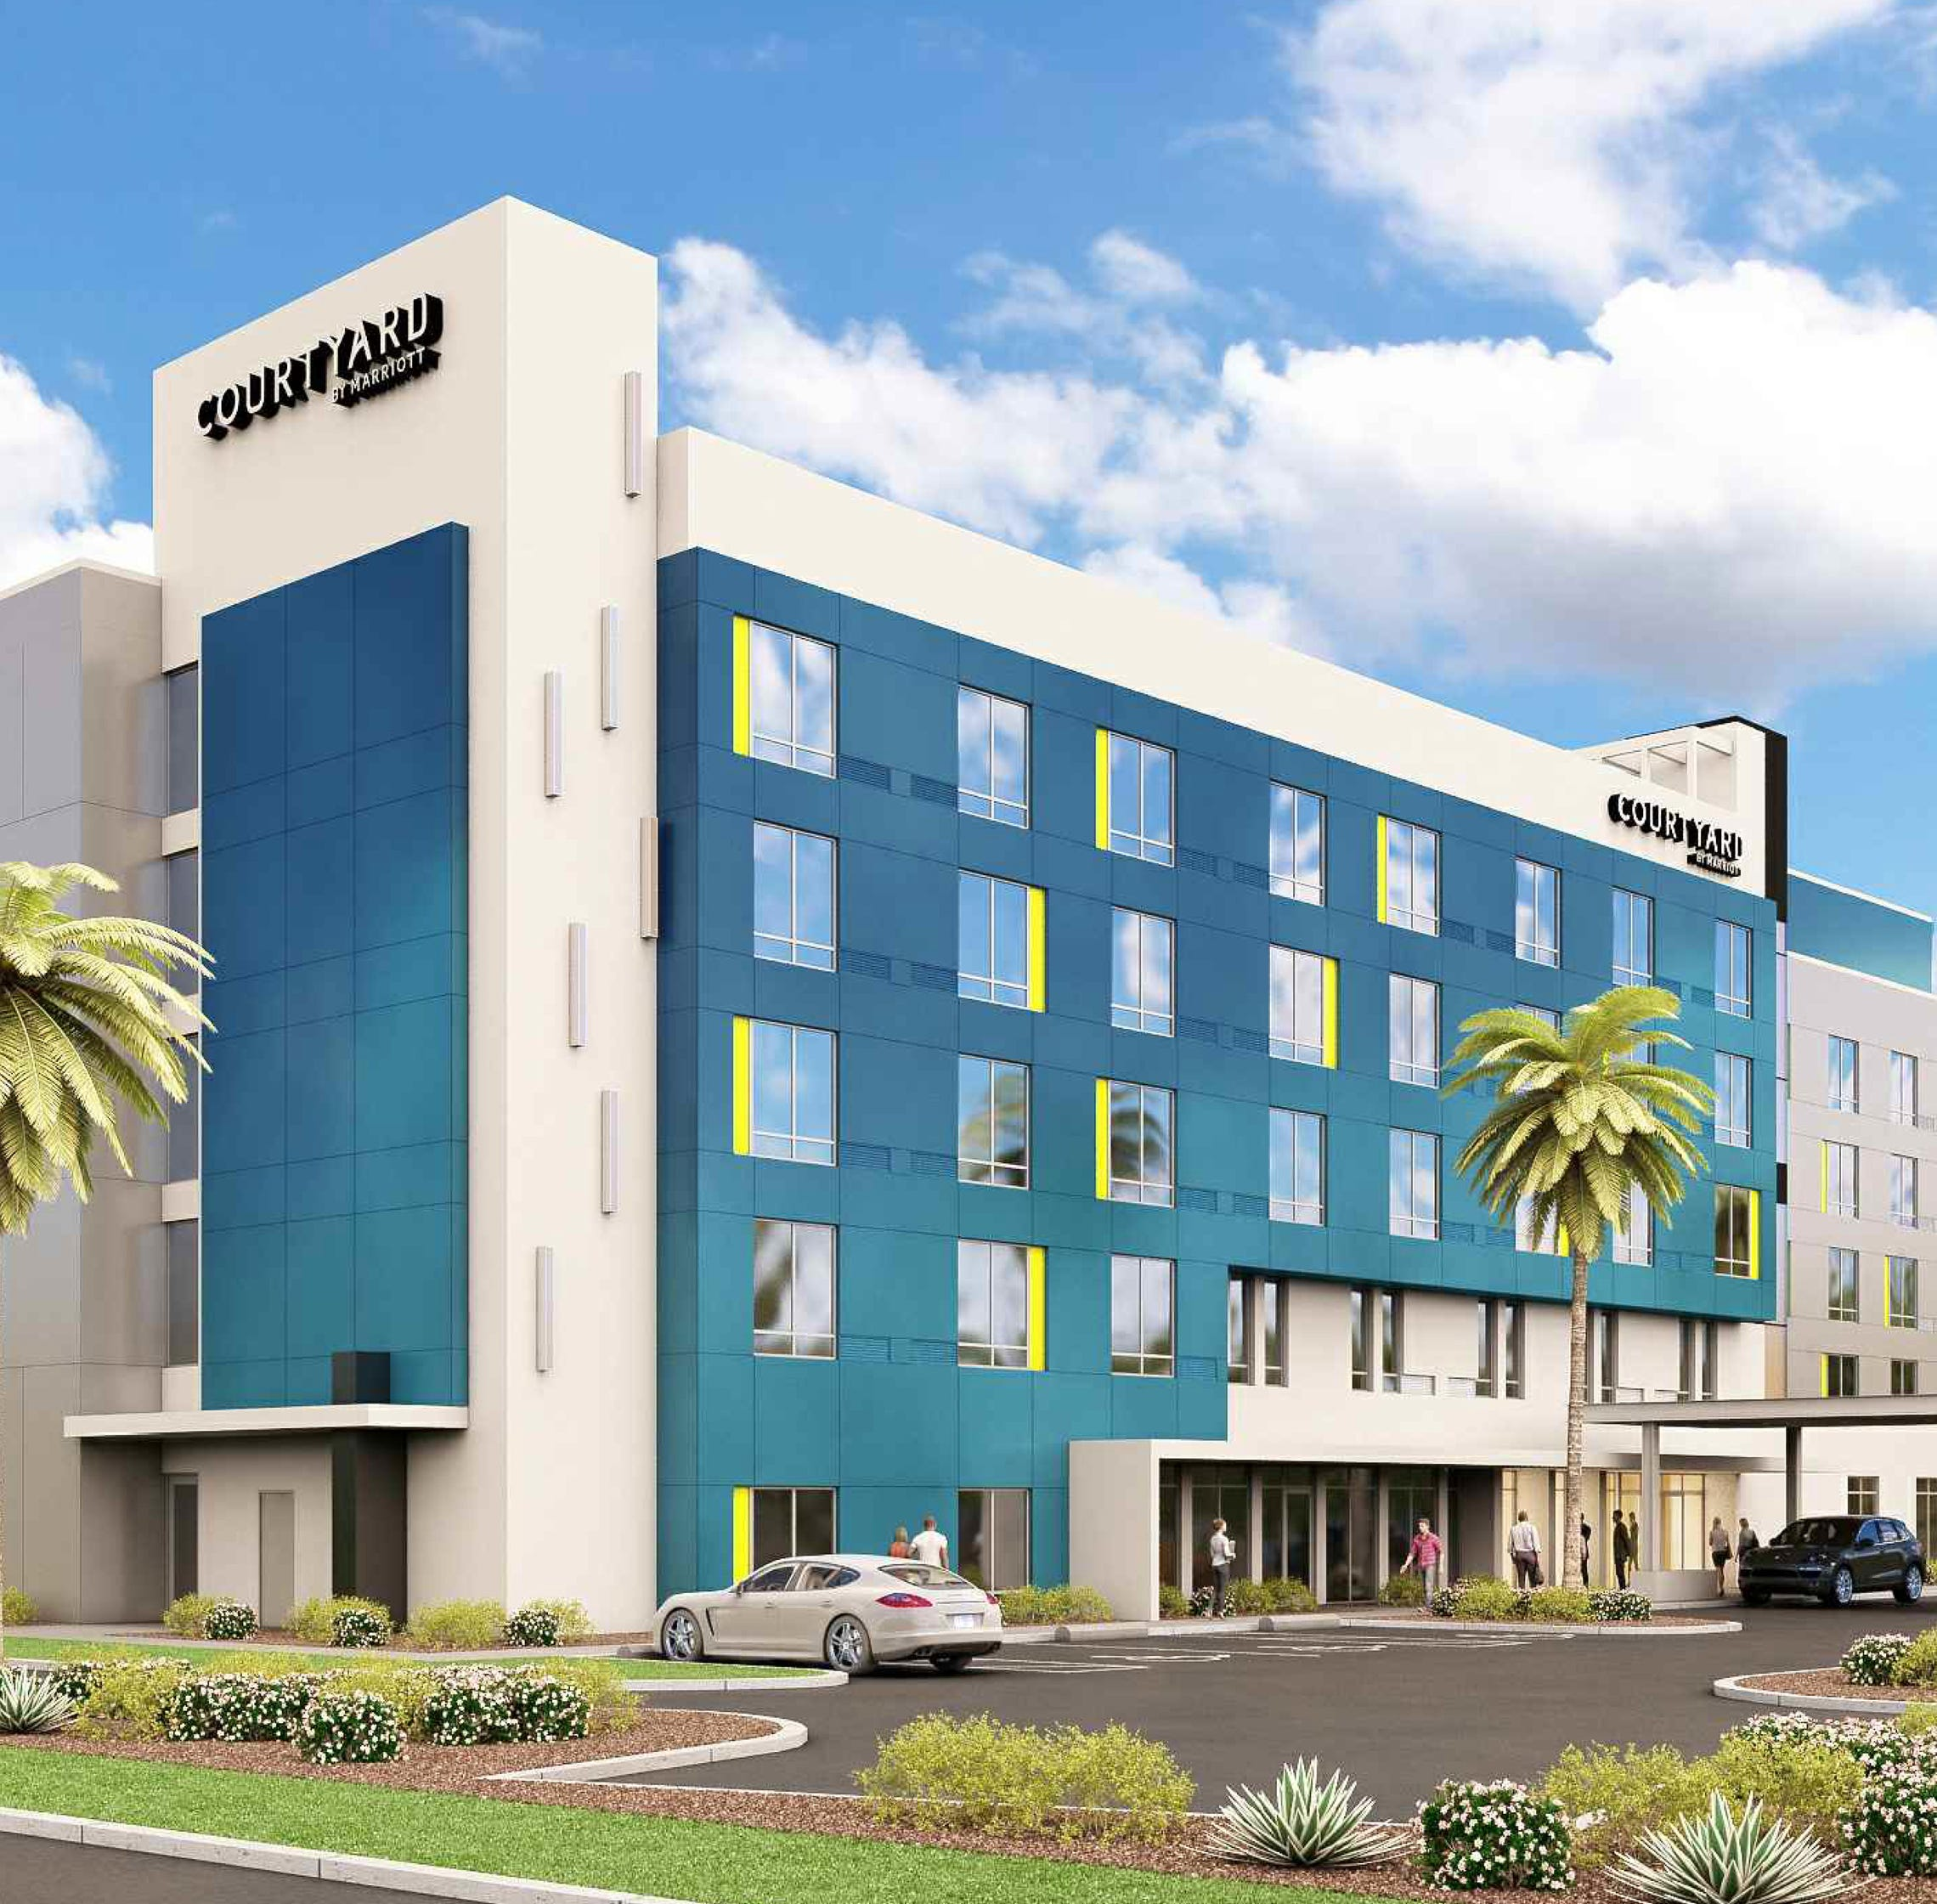 New hotel with Kennedy Space Center views to rise in Titusville